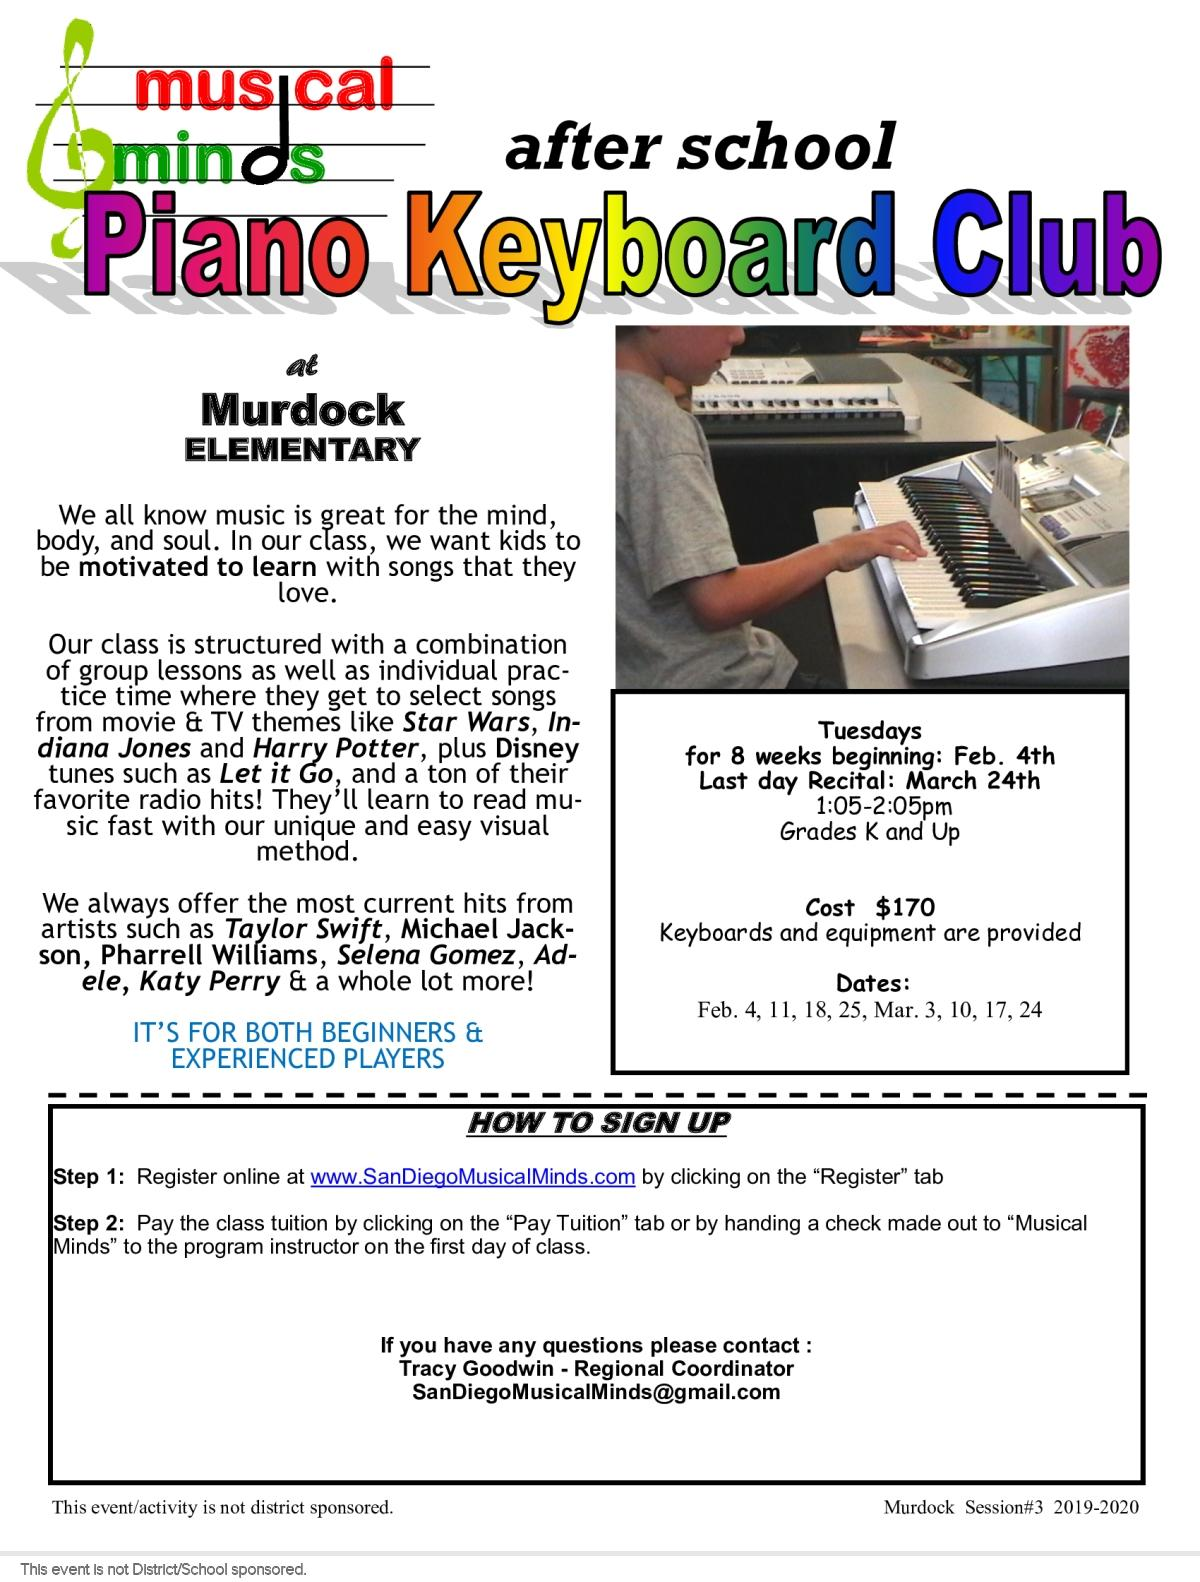 Musical Minds Club Flyer